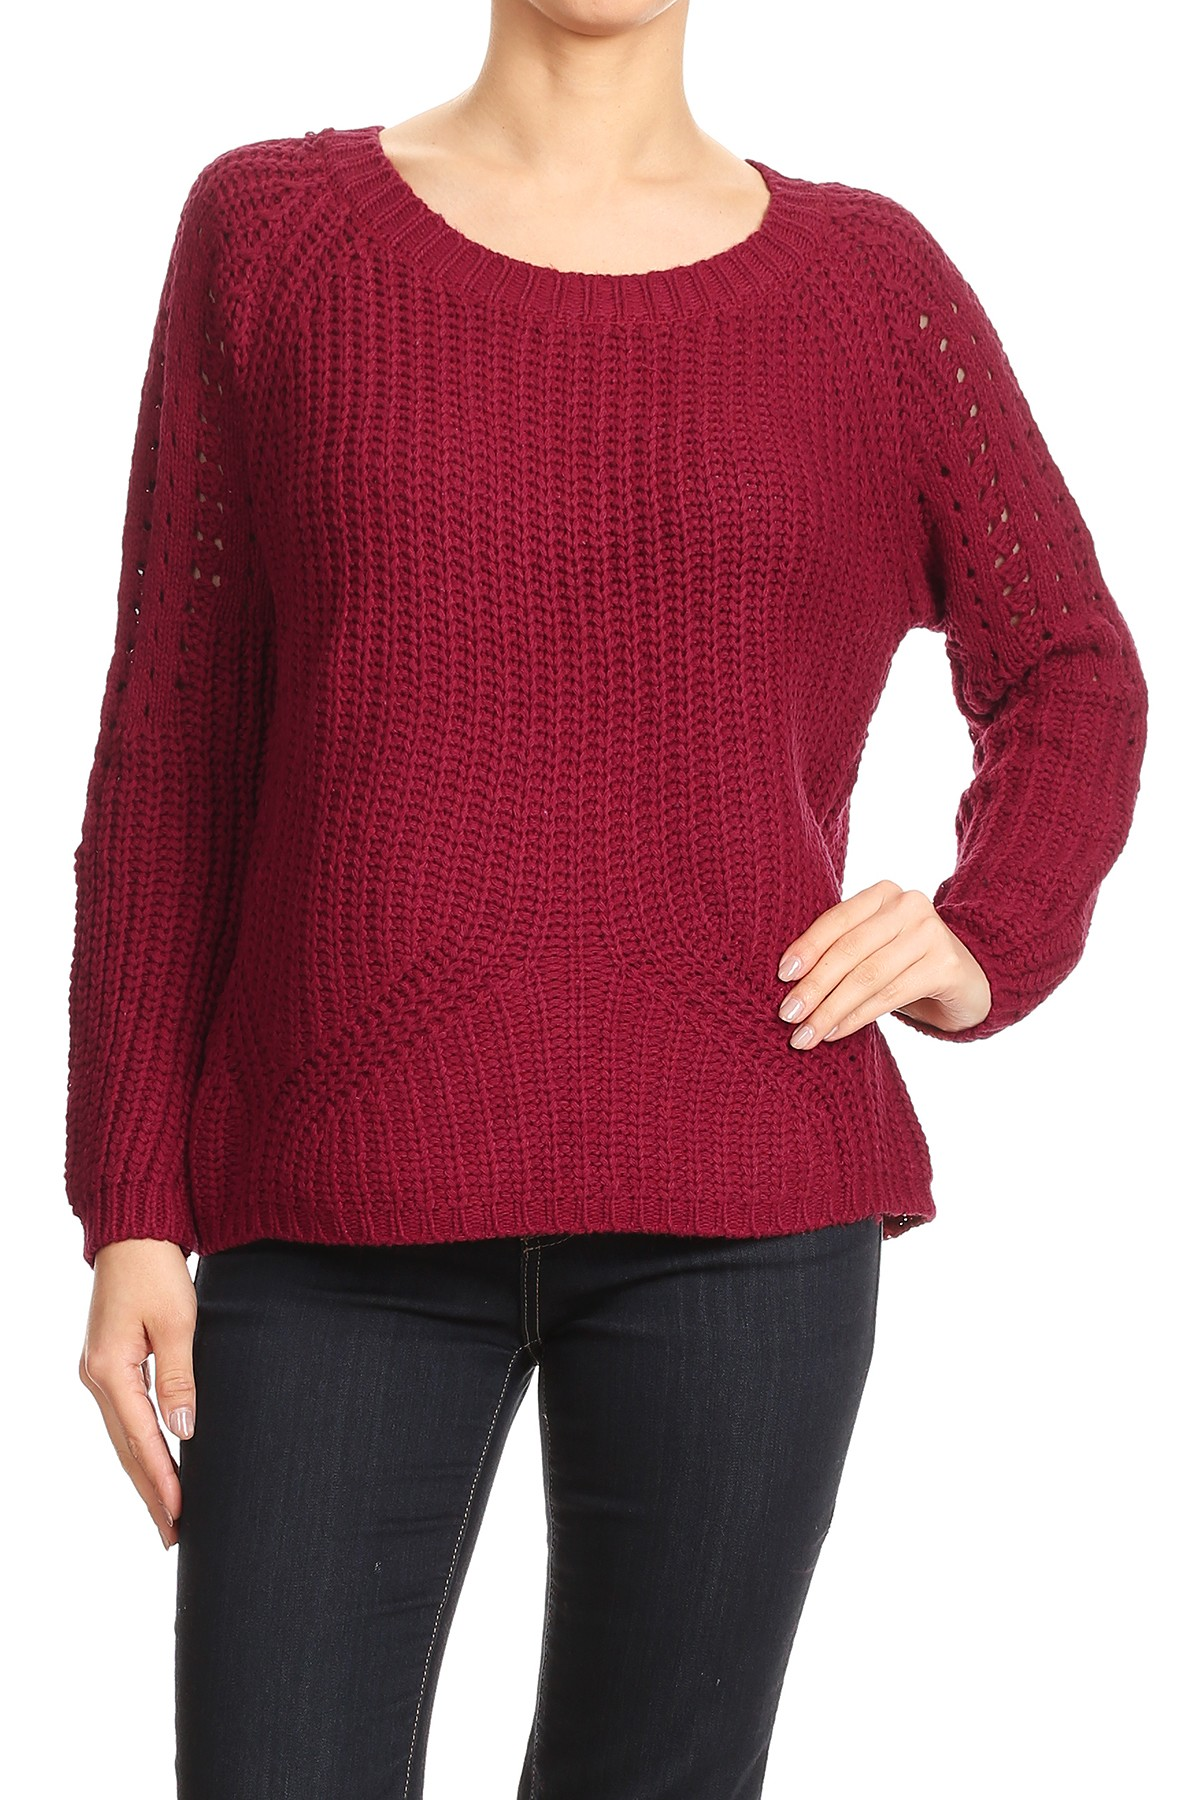 Looking for wholesale bulk discount fall sweaters cheap online drop shipping? fishingrodde.cf offers a large selection of discount cheap fall sweaters at a fraction of the retail price.